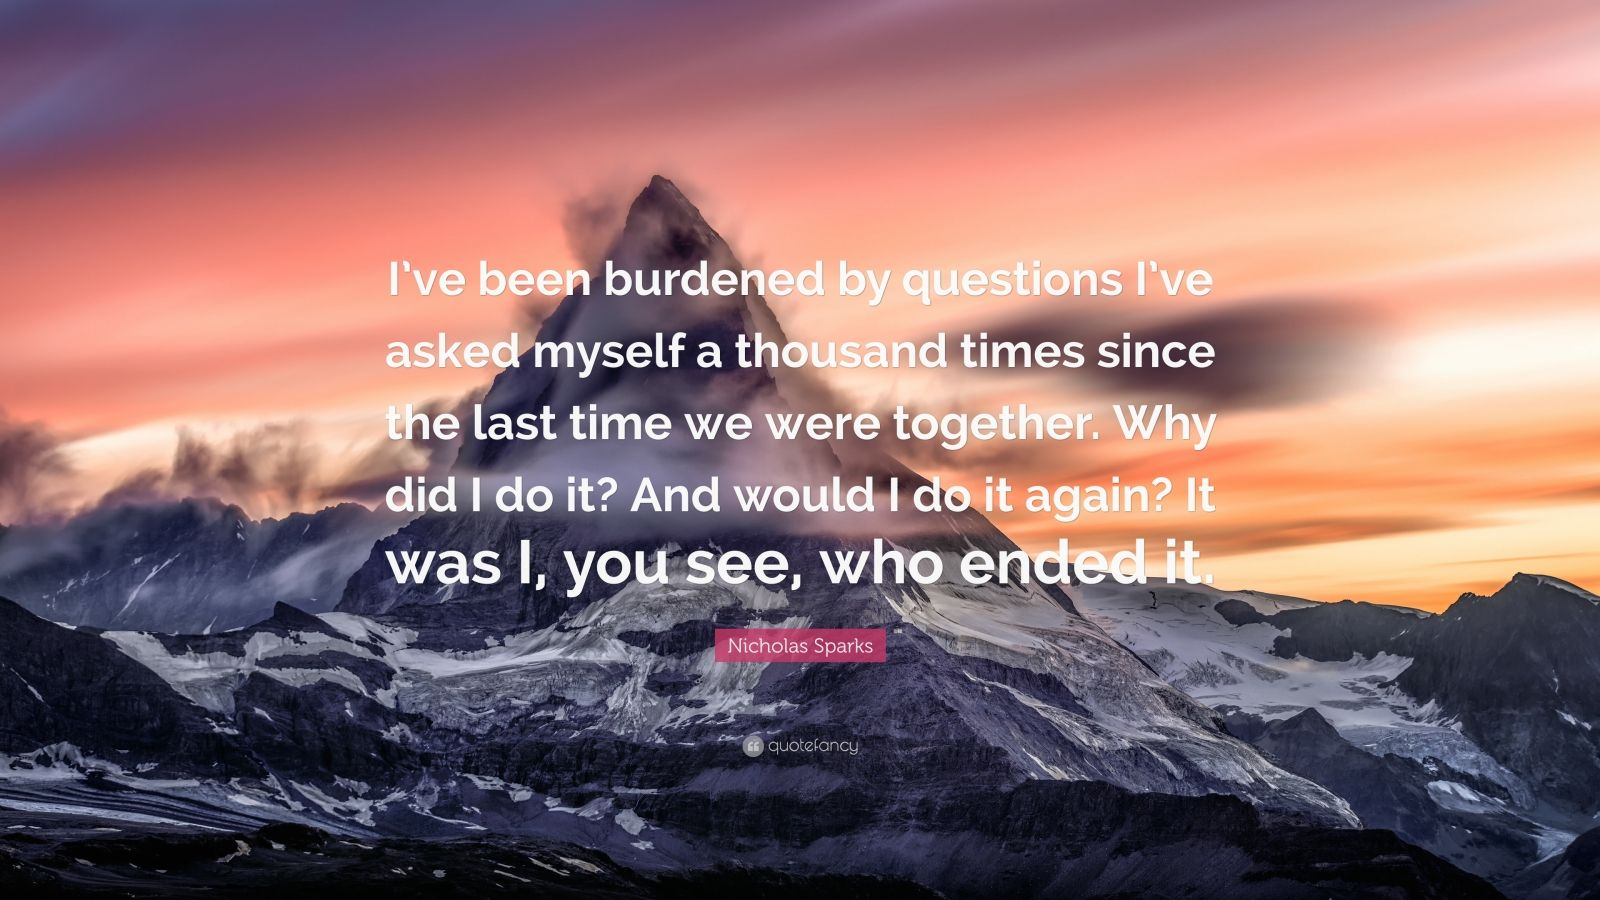 """Nicholas Sparks Quote: """"I've been burdened by questions I've asked myself a thousand times since the last time we were together. Why did I do it? And would I do it again? It was I, you see, who ended it."""""""